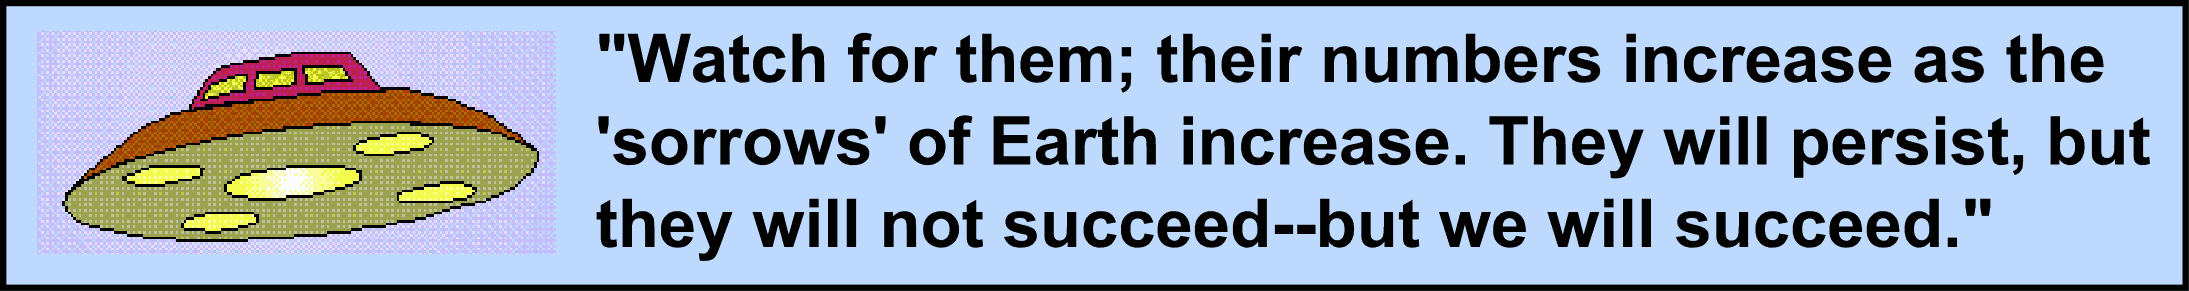 "Image:Watch for them; their numbers increase as the ""sorrows"" of Earth increase. They will persist, but they will not succeed--but we will succeed."